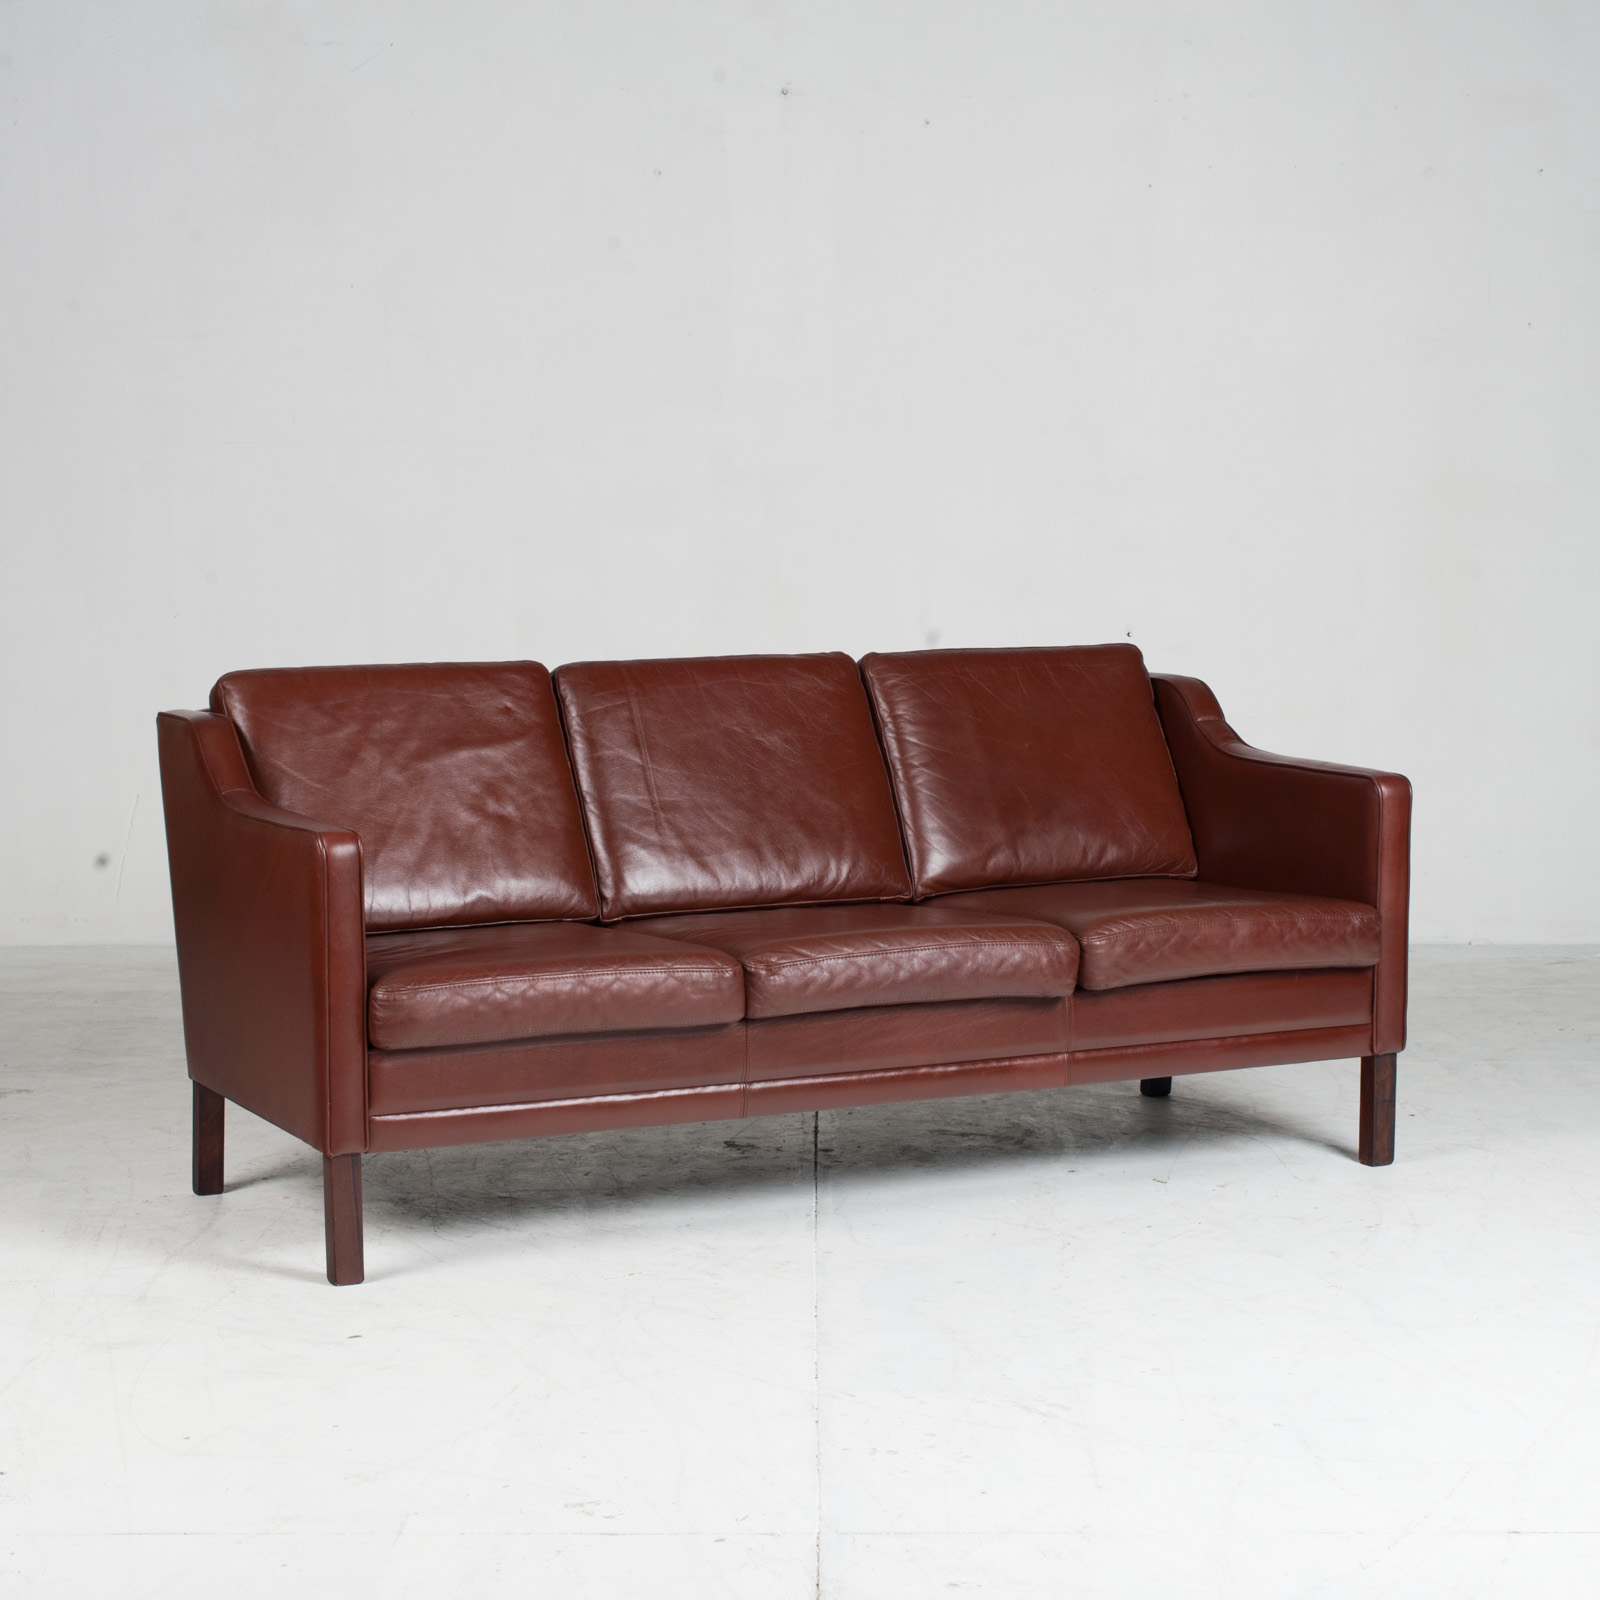 3 Seater Sofa In Tan Leather 1960s Denmark2